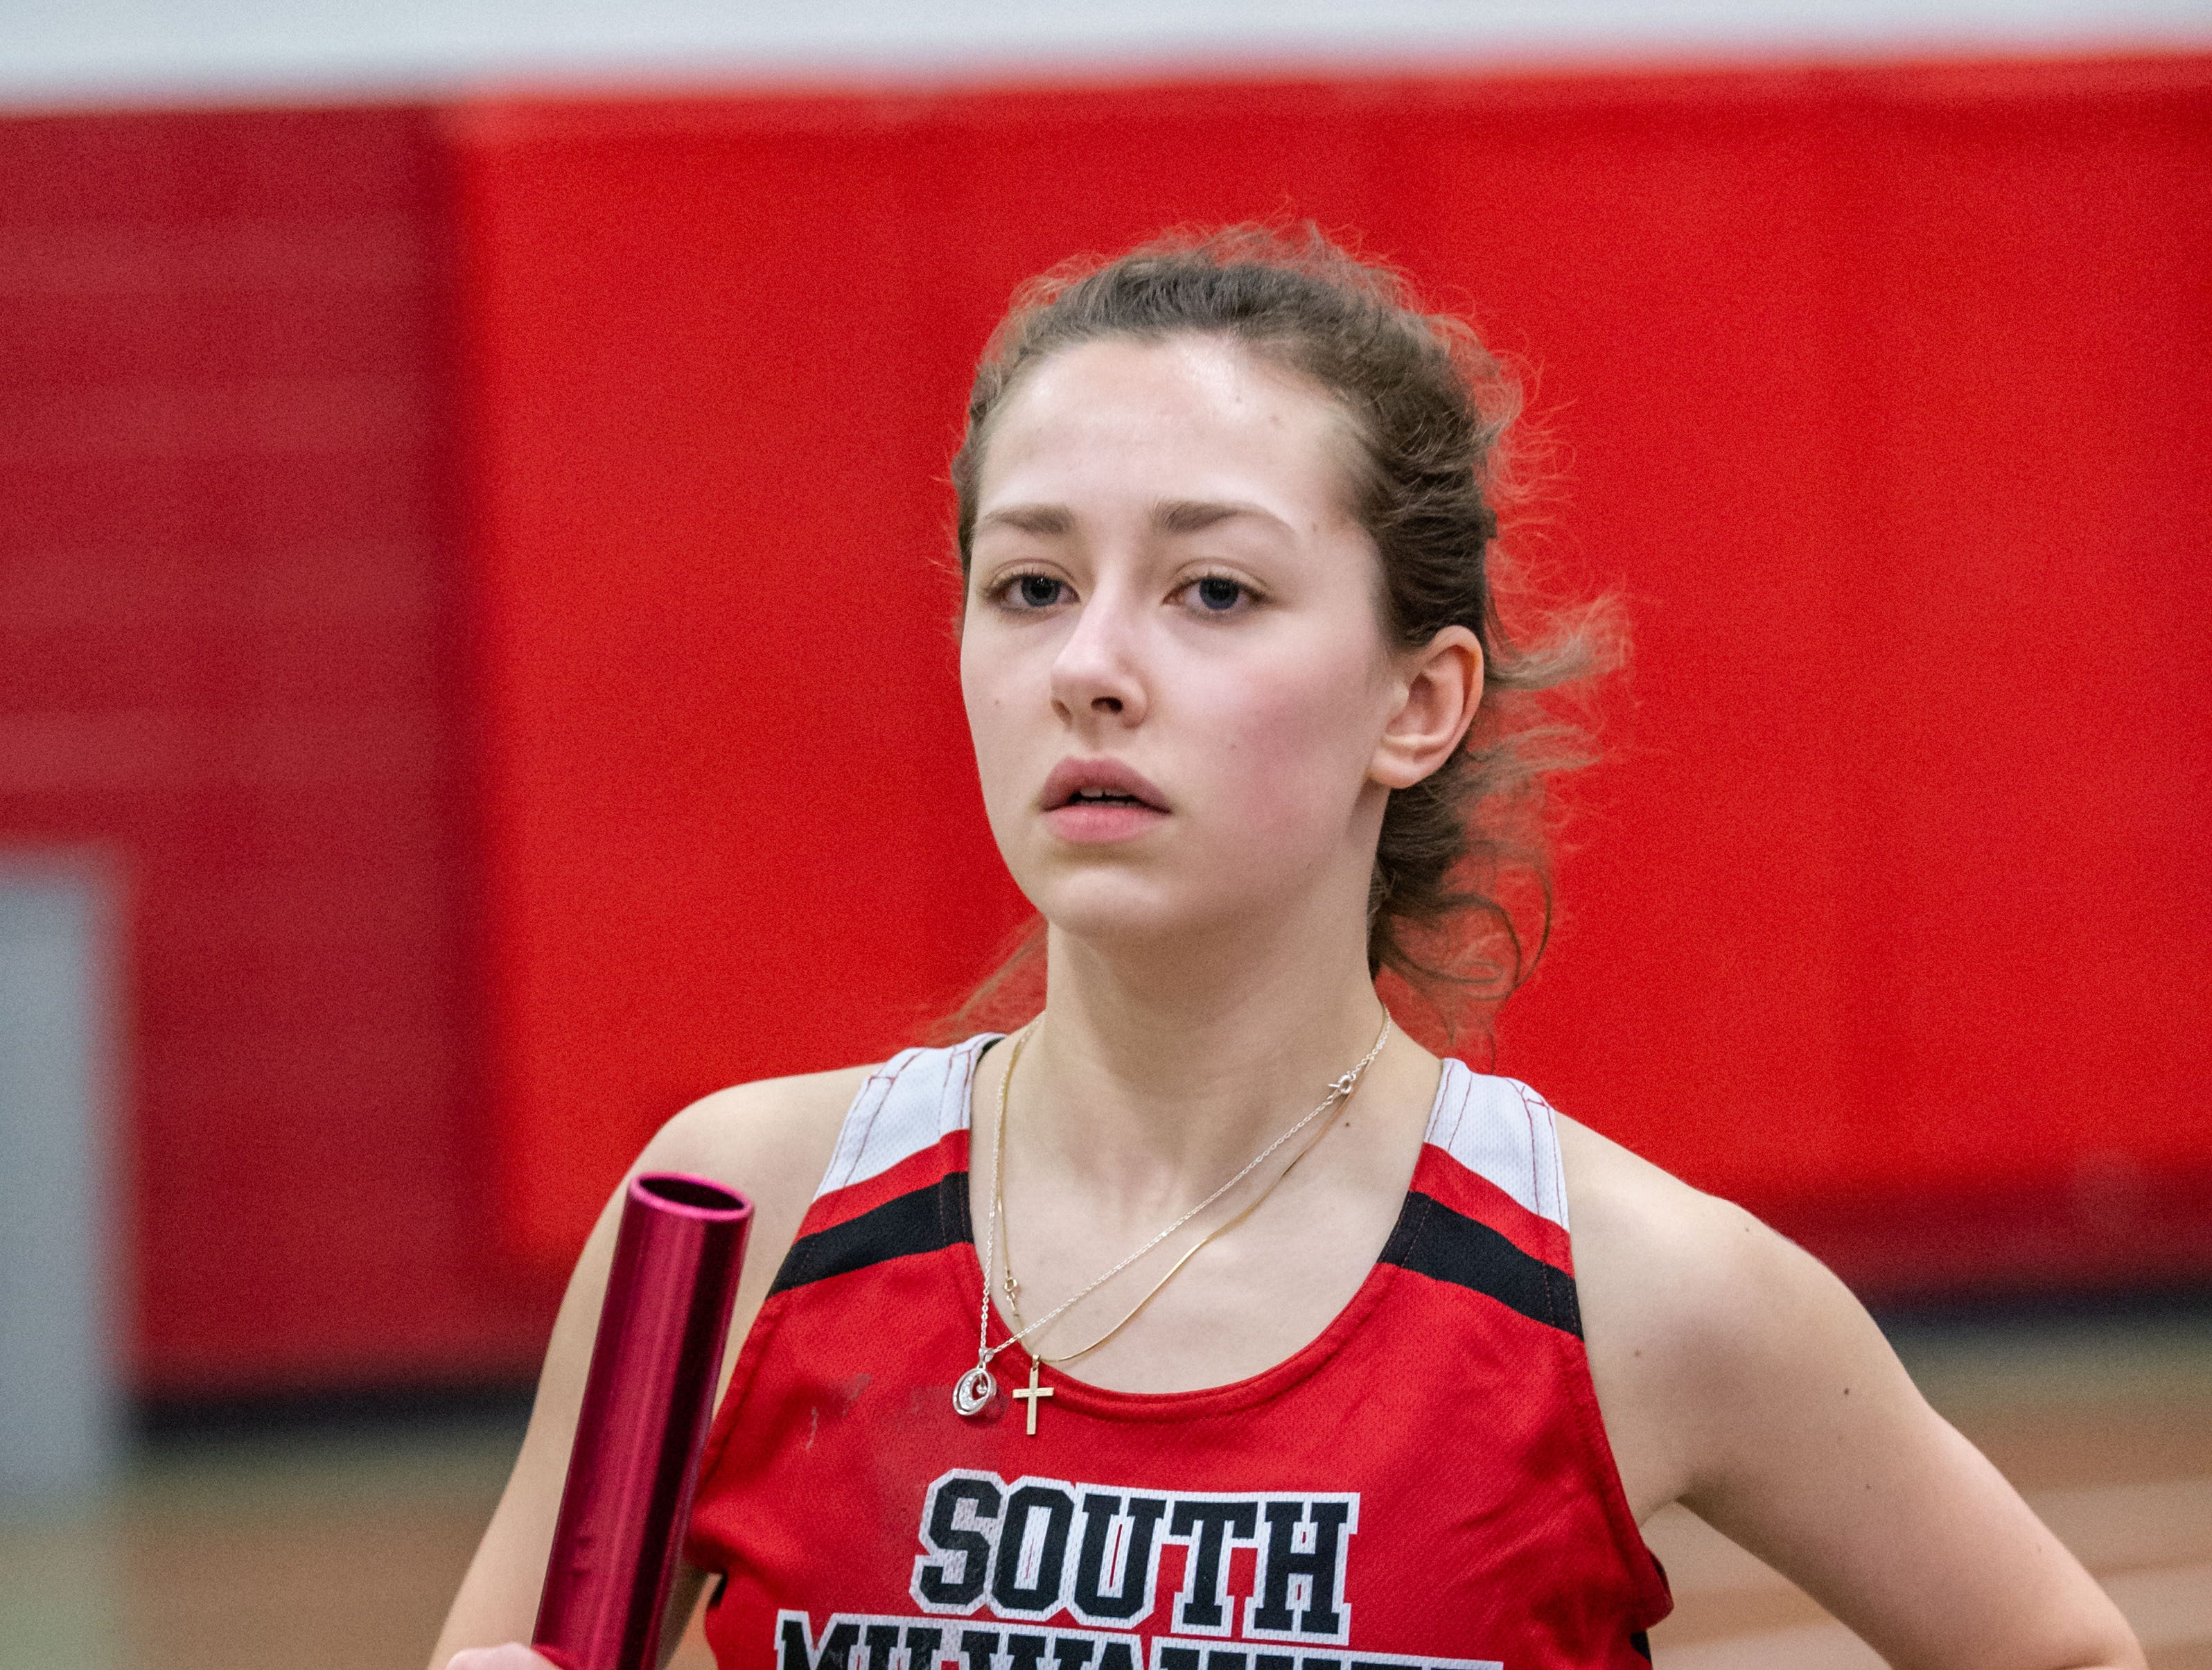 South Milwaukee's Kayla Solomon competes in the distance medley at the Peter Rempe Cardinal Relays hosted by Waukesha South on Thursday, March 21, 2019.